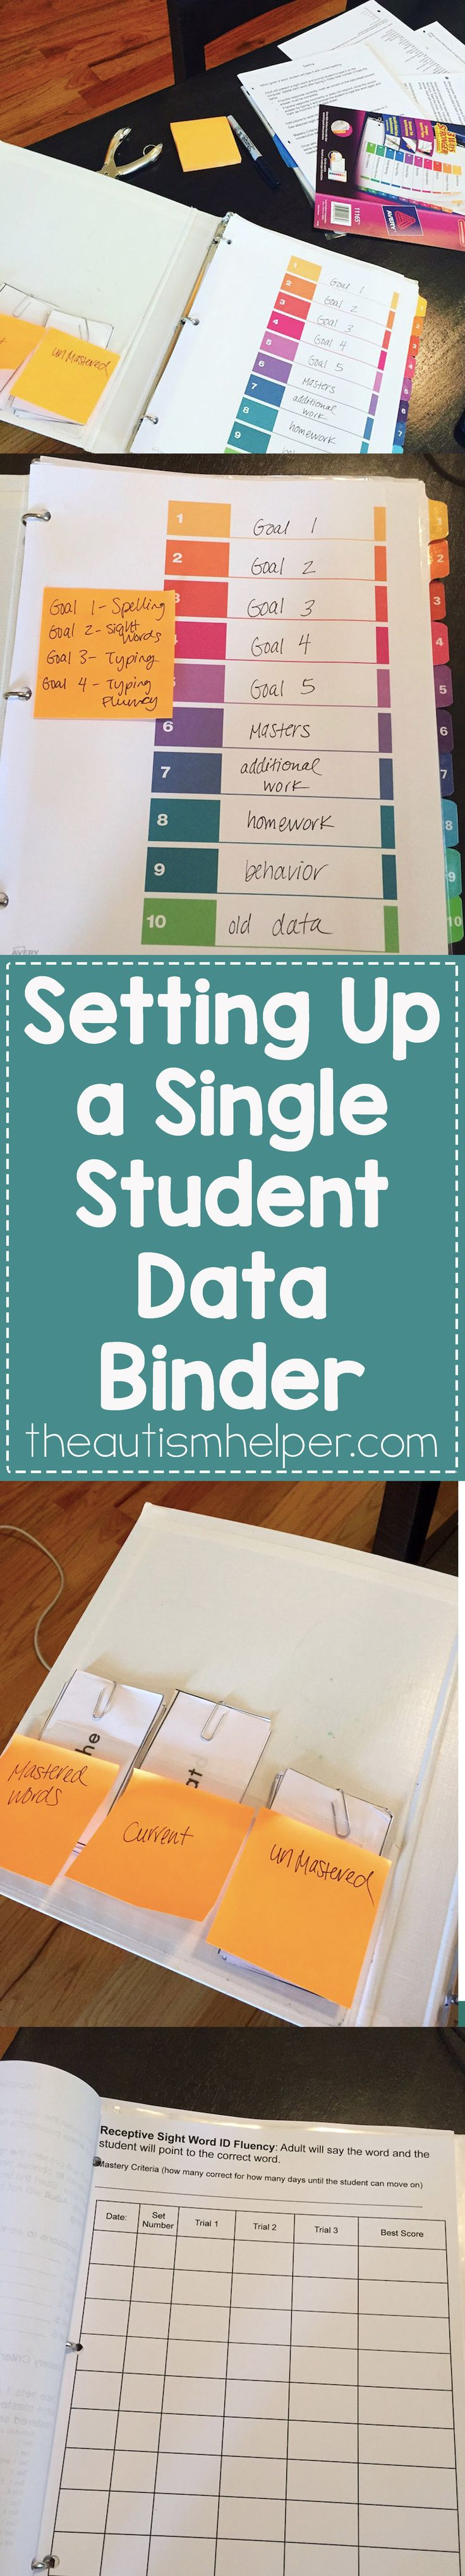 Having a separate data binder, clipboard, or area for data for each student is a great way to stay organized plus makes writing IEPs a bit quicker. It's perfect for one on one paraprofessionals & in-home therapists! From theautismhelper.com #theautismhelper